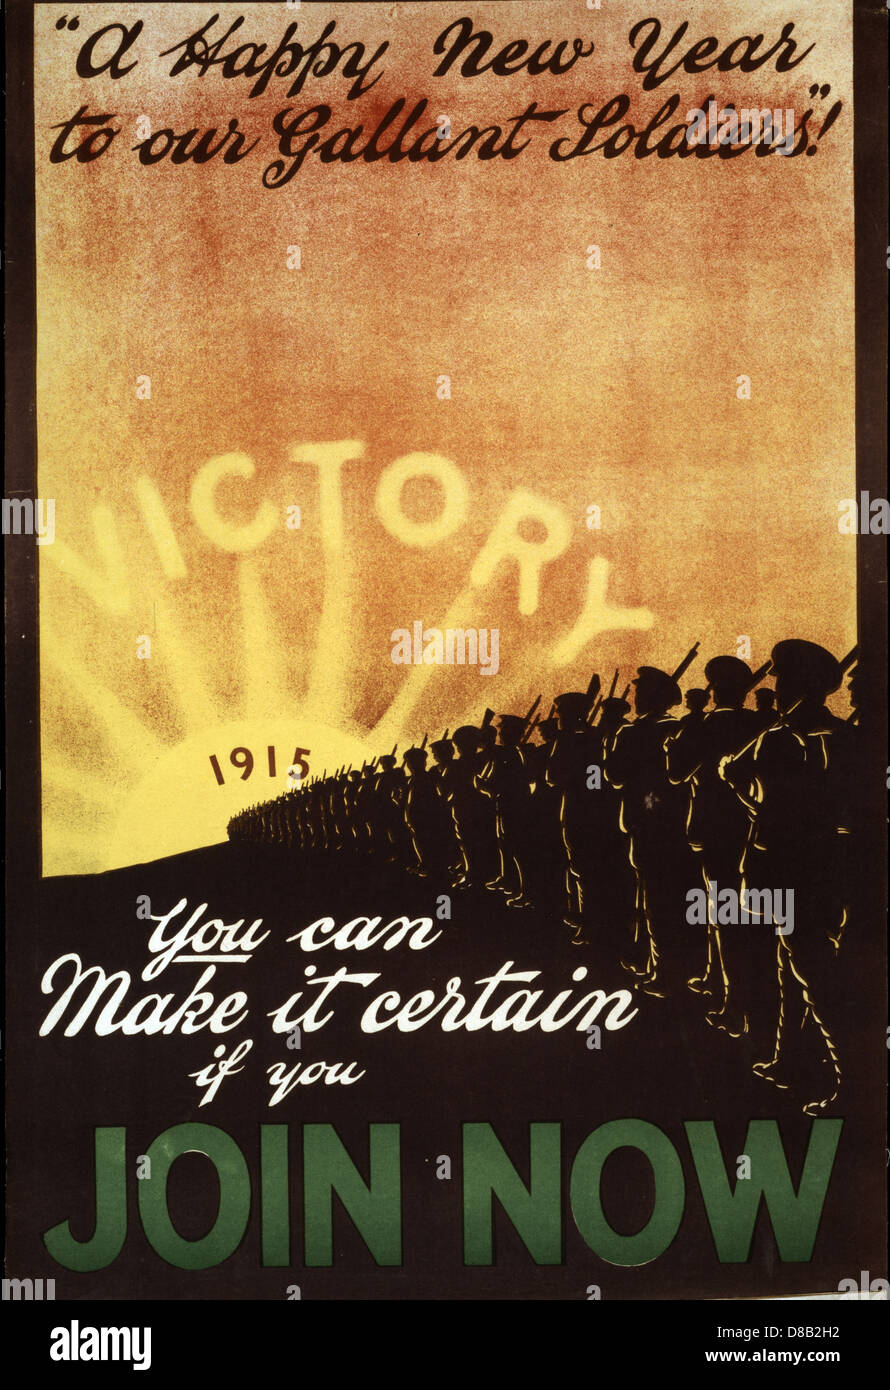 A happy new year to our gallant soldiers!' You can make it certain if you join now 1915 British Enlist Propaganda - Stock Image